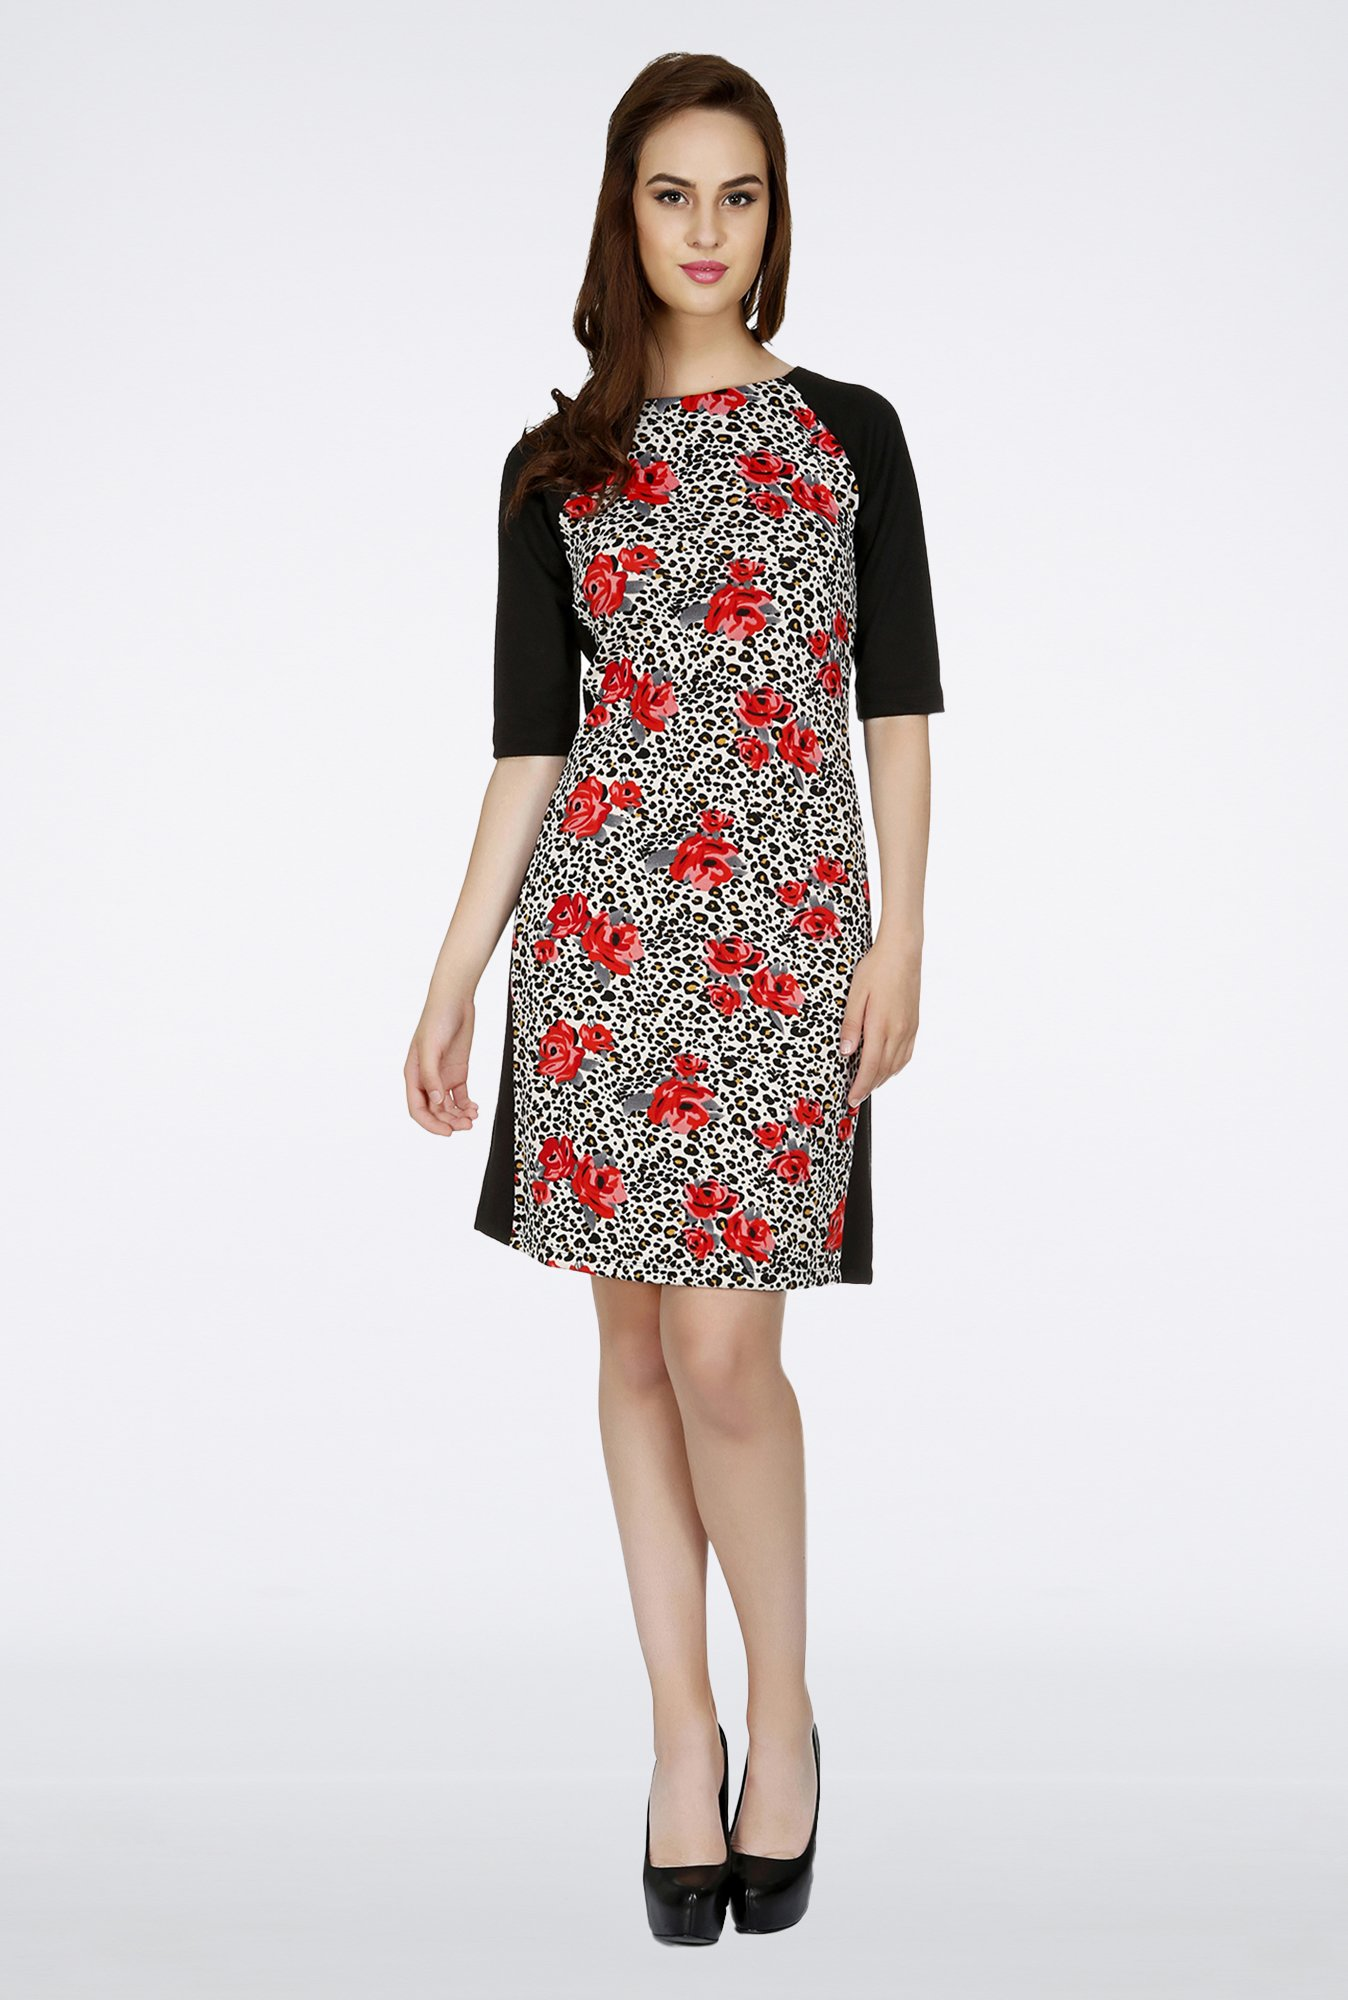 109 F Multicolor Floral Printed Dress